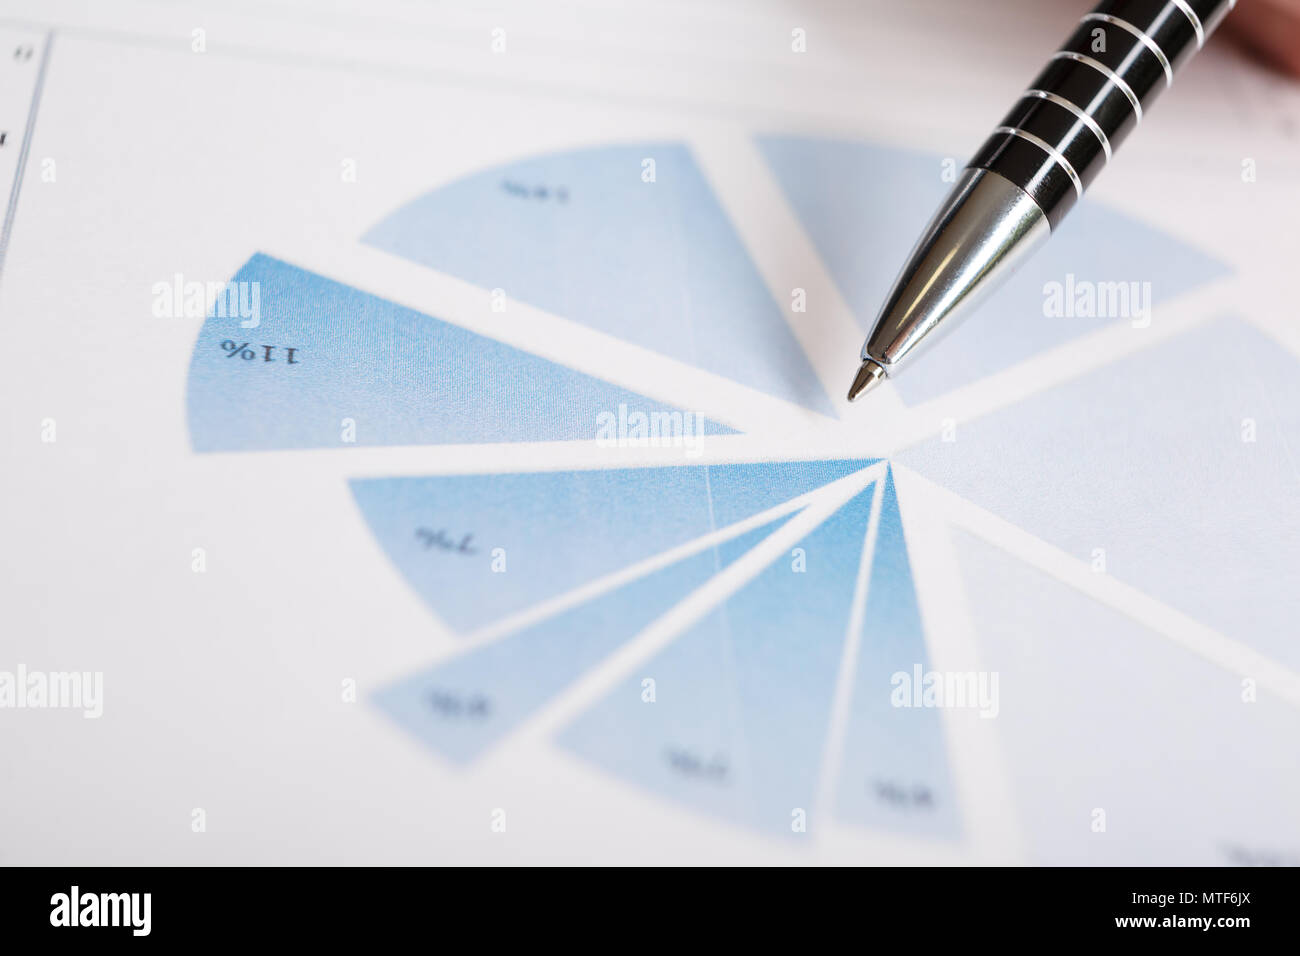 Pen on graph. Macro image.Financial data analysis concept - Stock Image